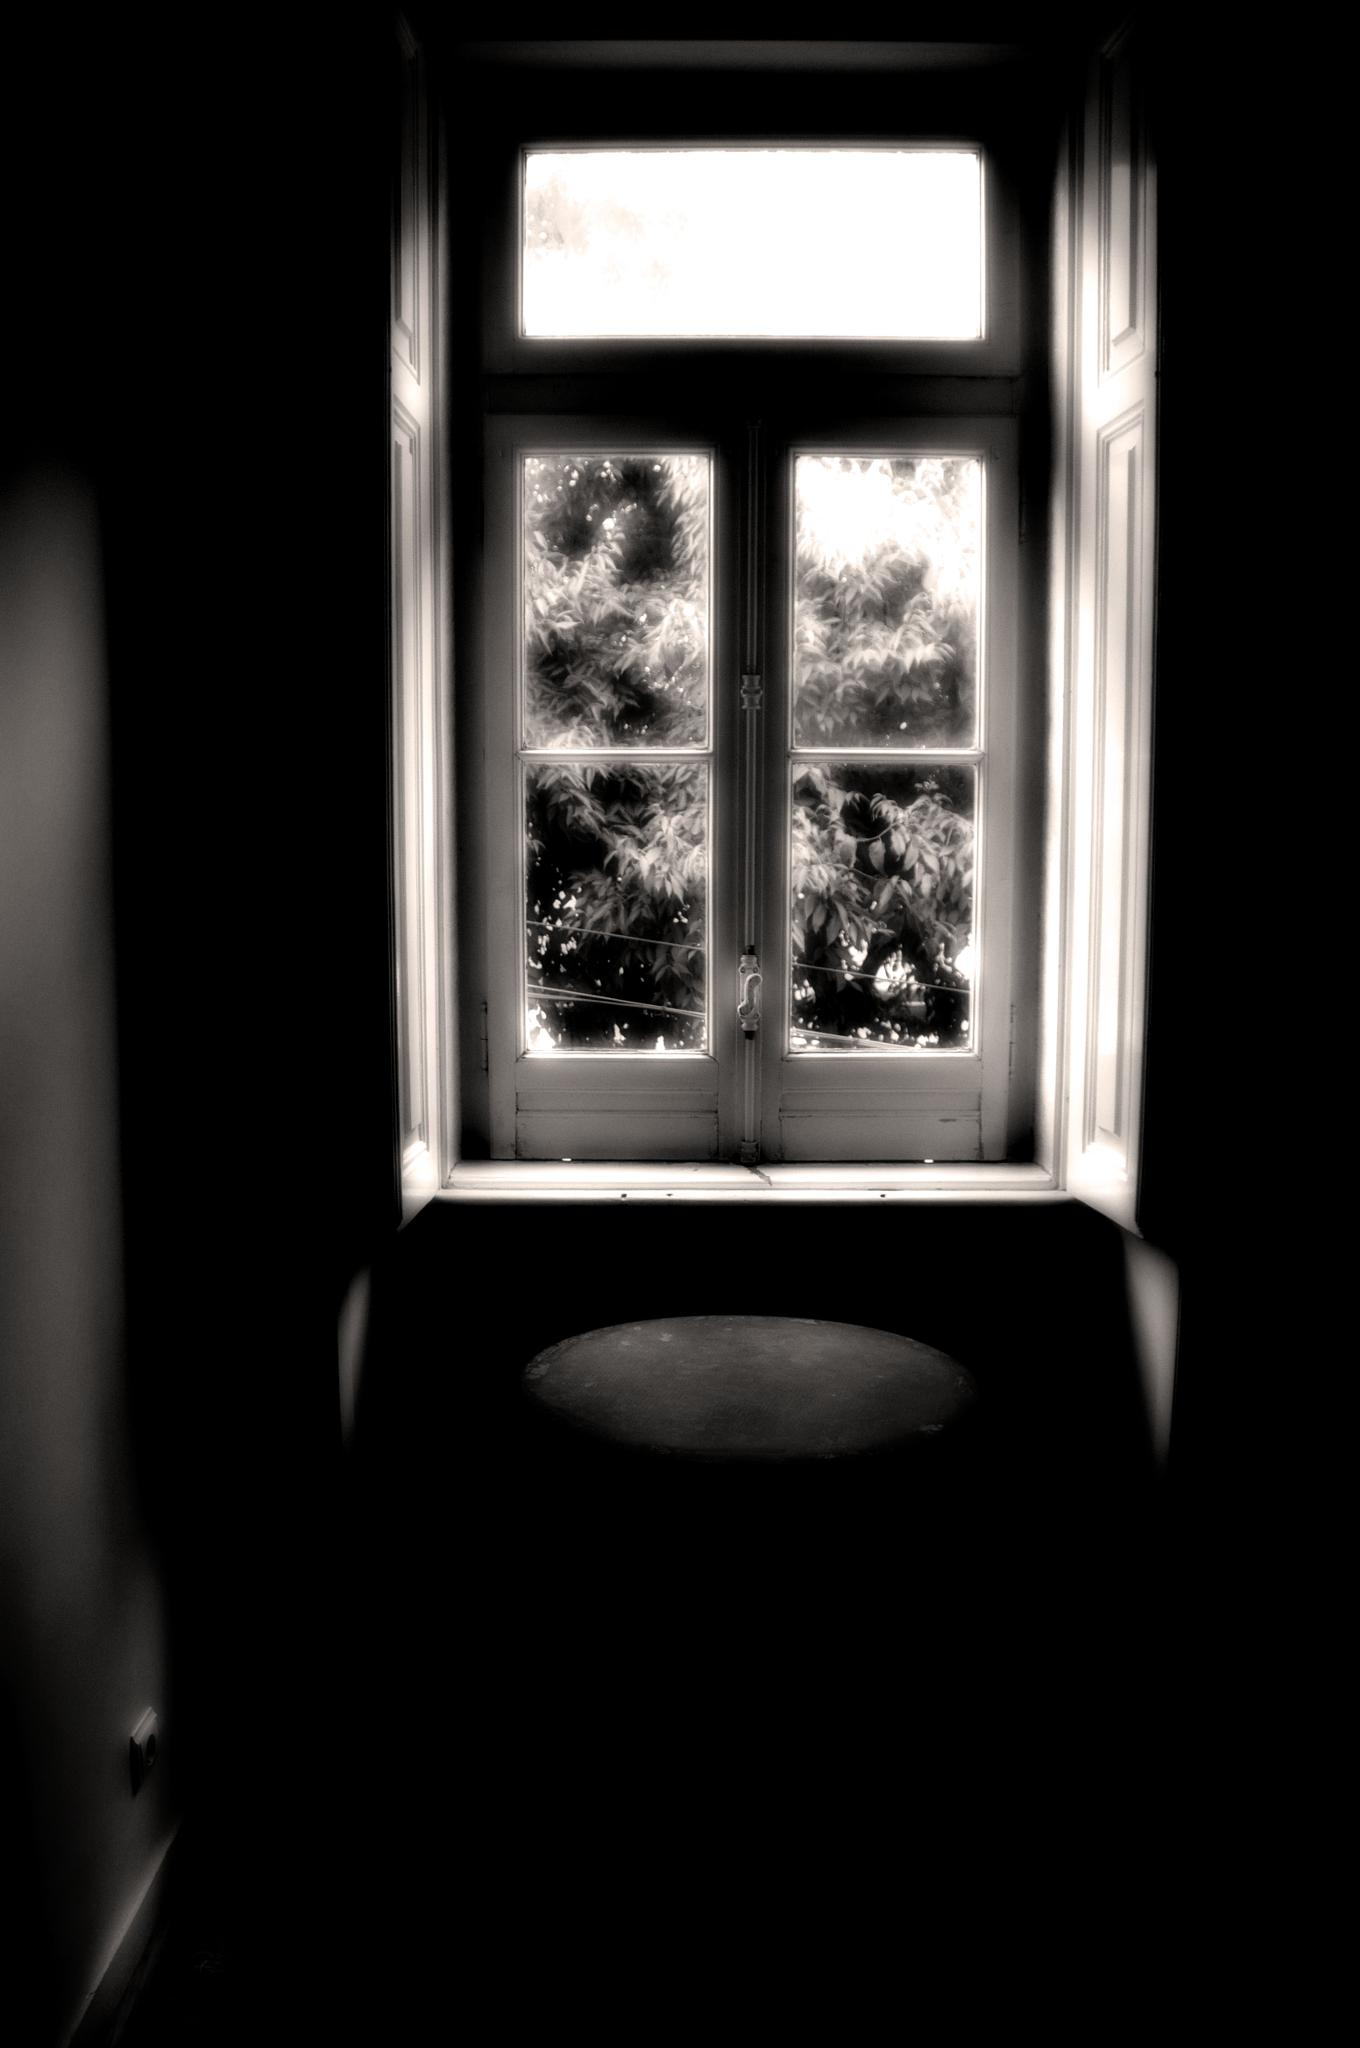 Behind the windows by FUMIGRAPHIK